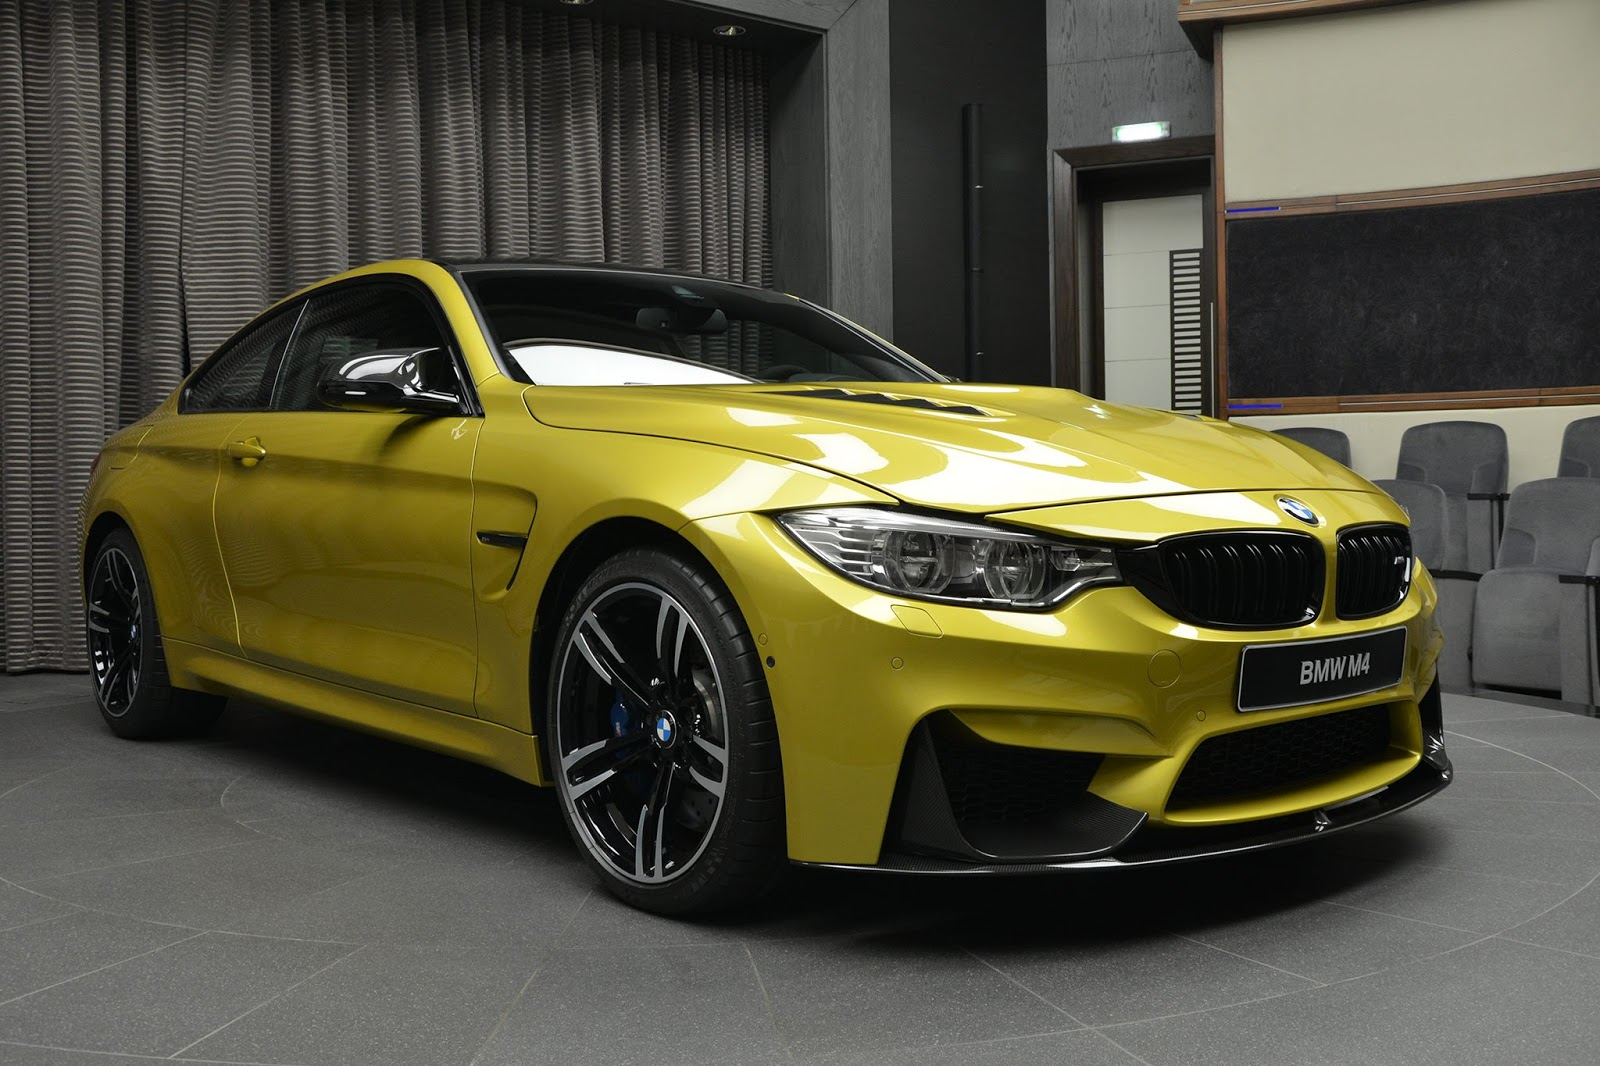 Austin Yellow Bmw M4 Laden With M Performance Parts Is Near Perfect Types Cars